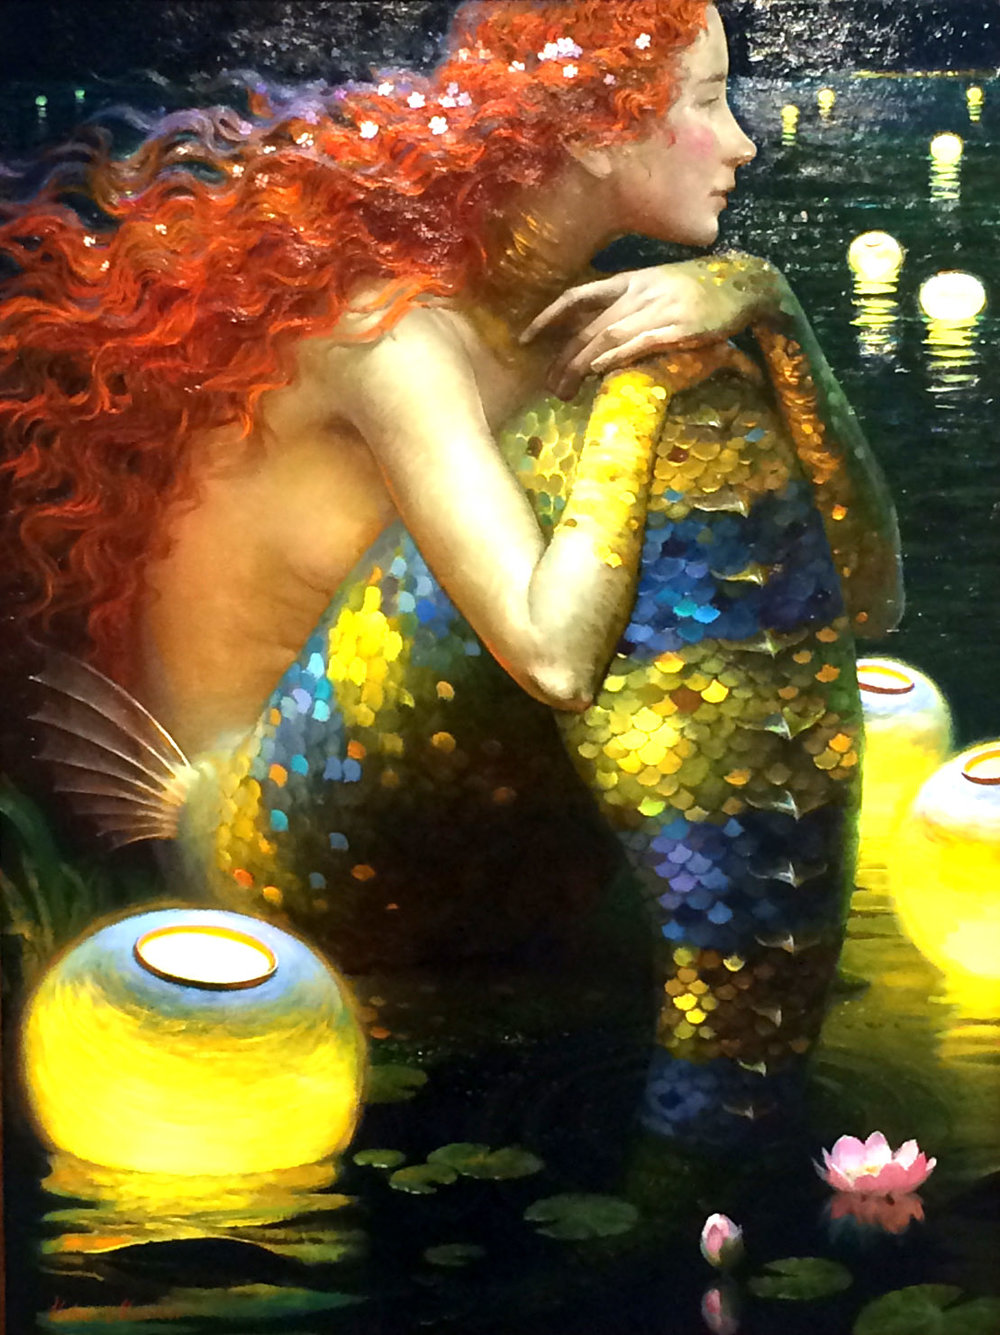 Oil painting by Victor Nizovtsev